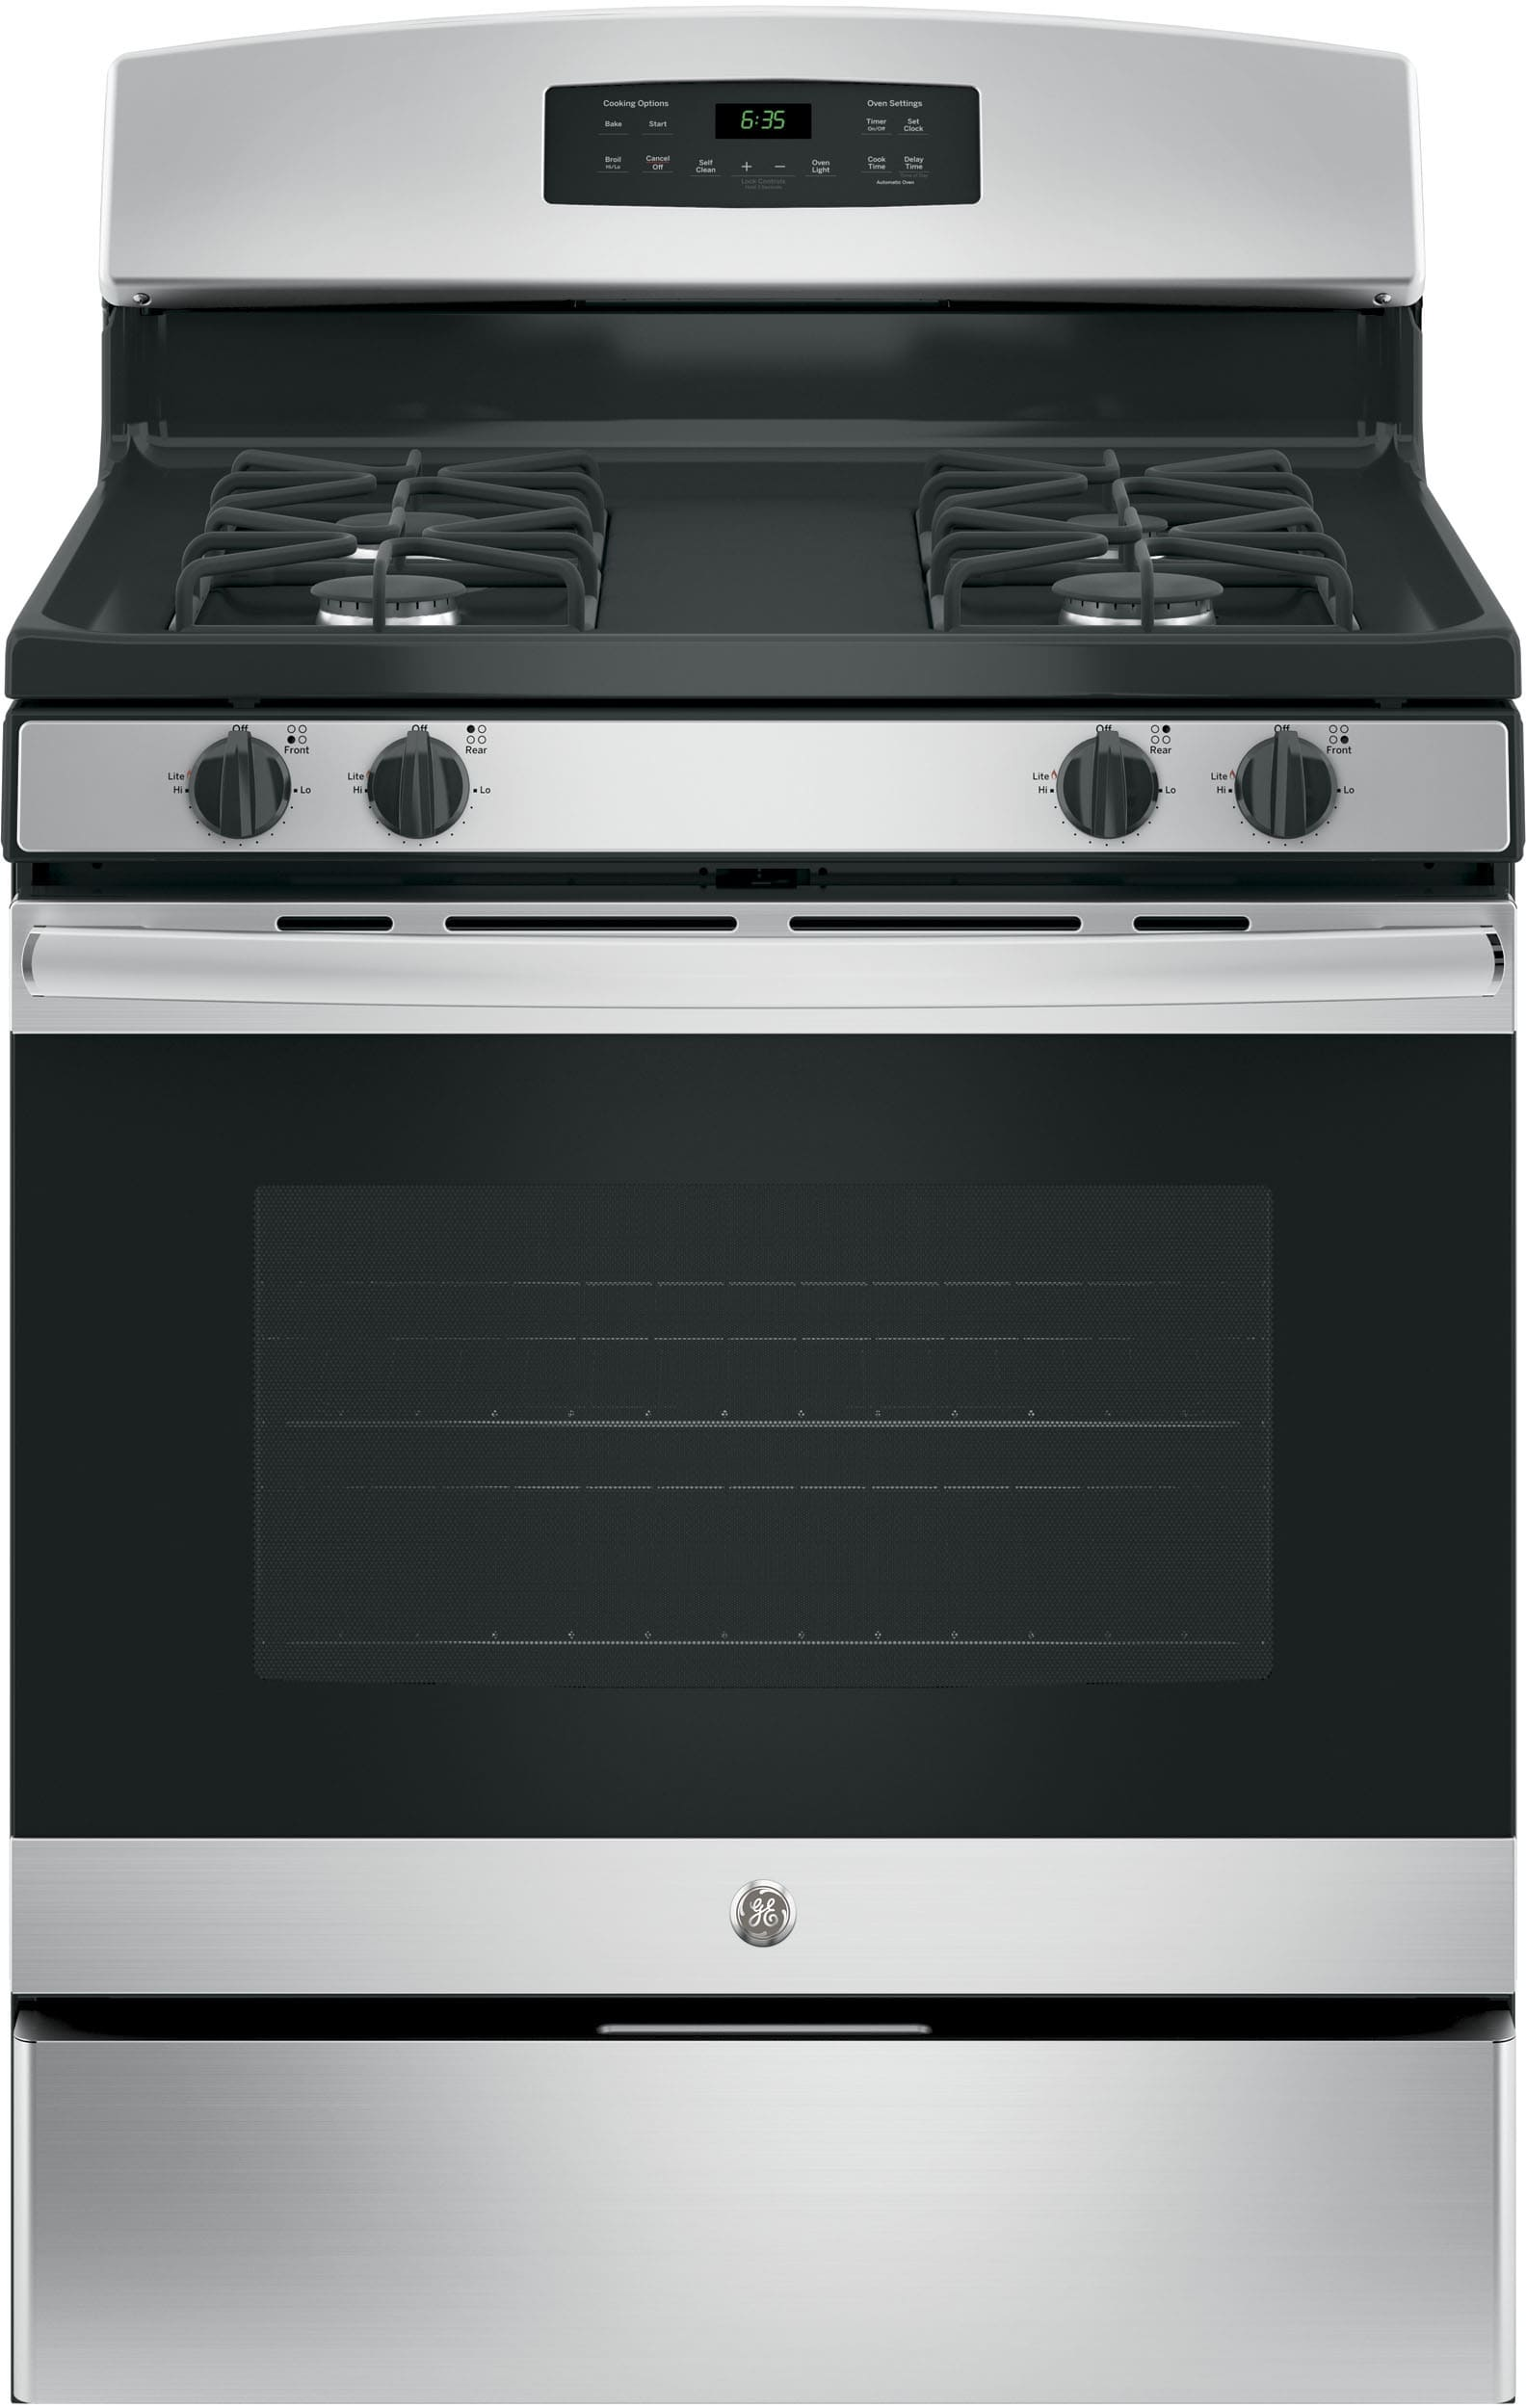 Ge Jgb635rekss 30 Inch Freestanding Gas Range With Precise